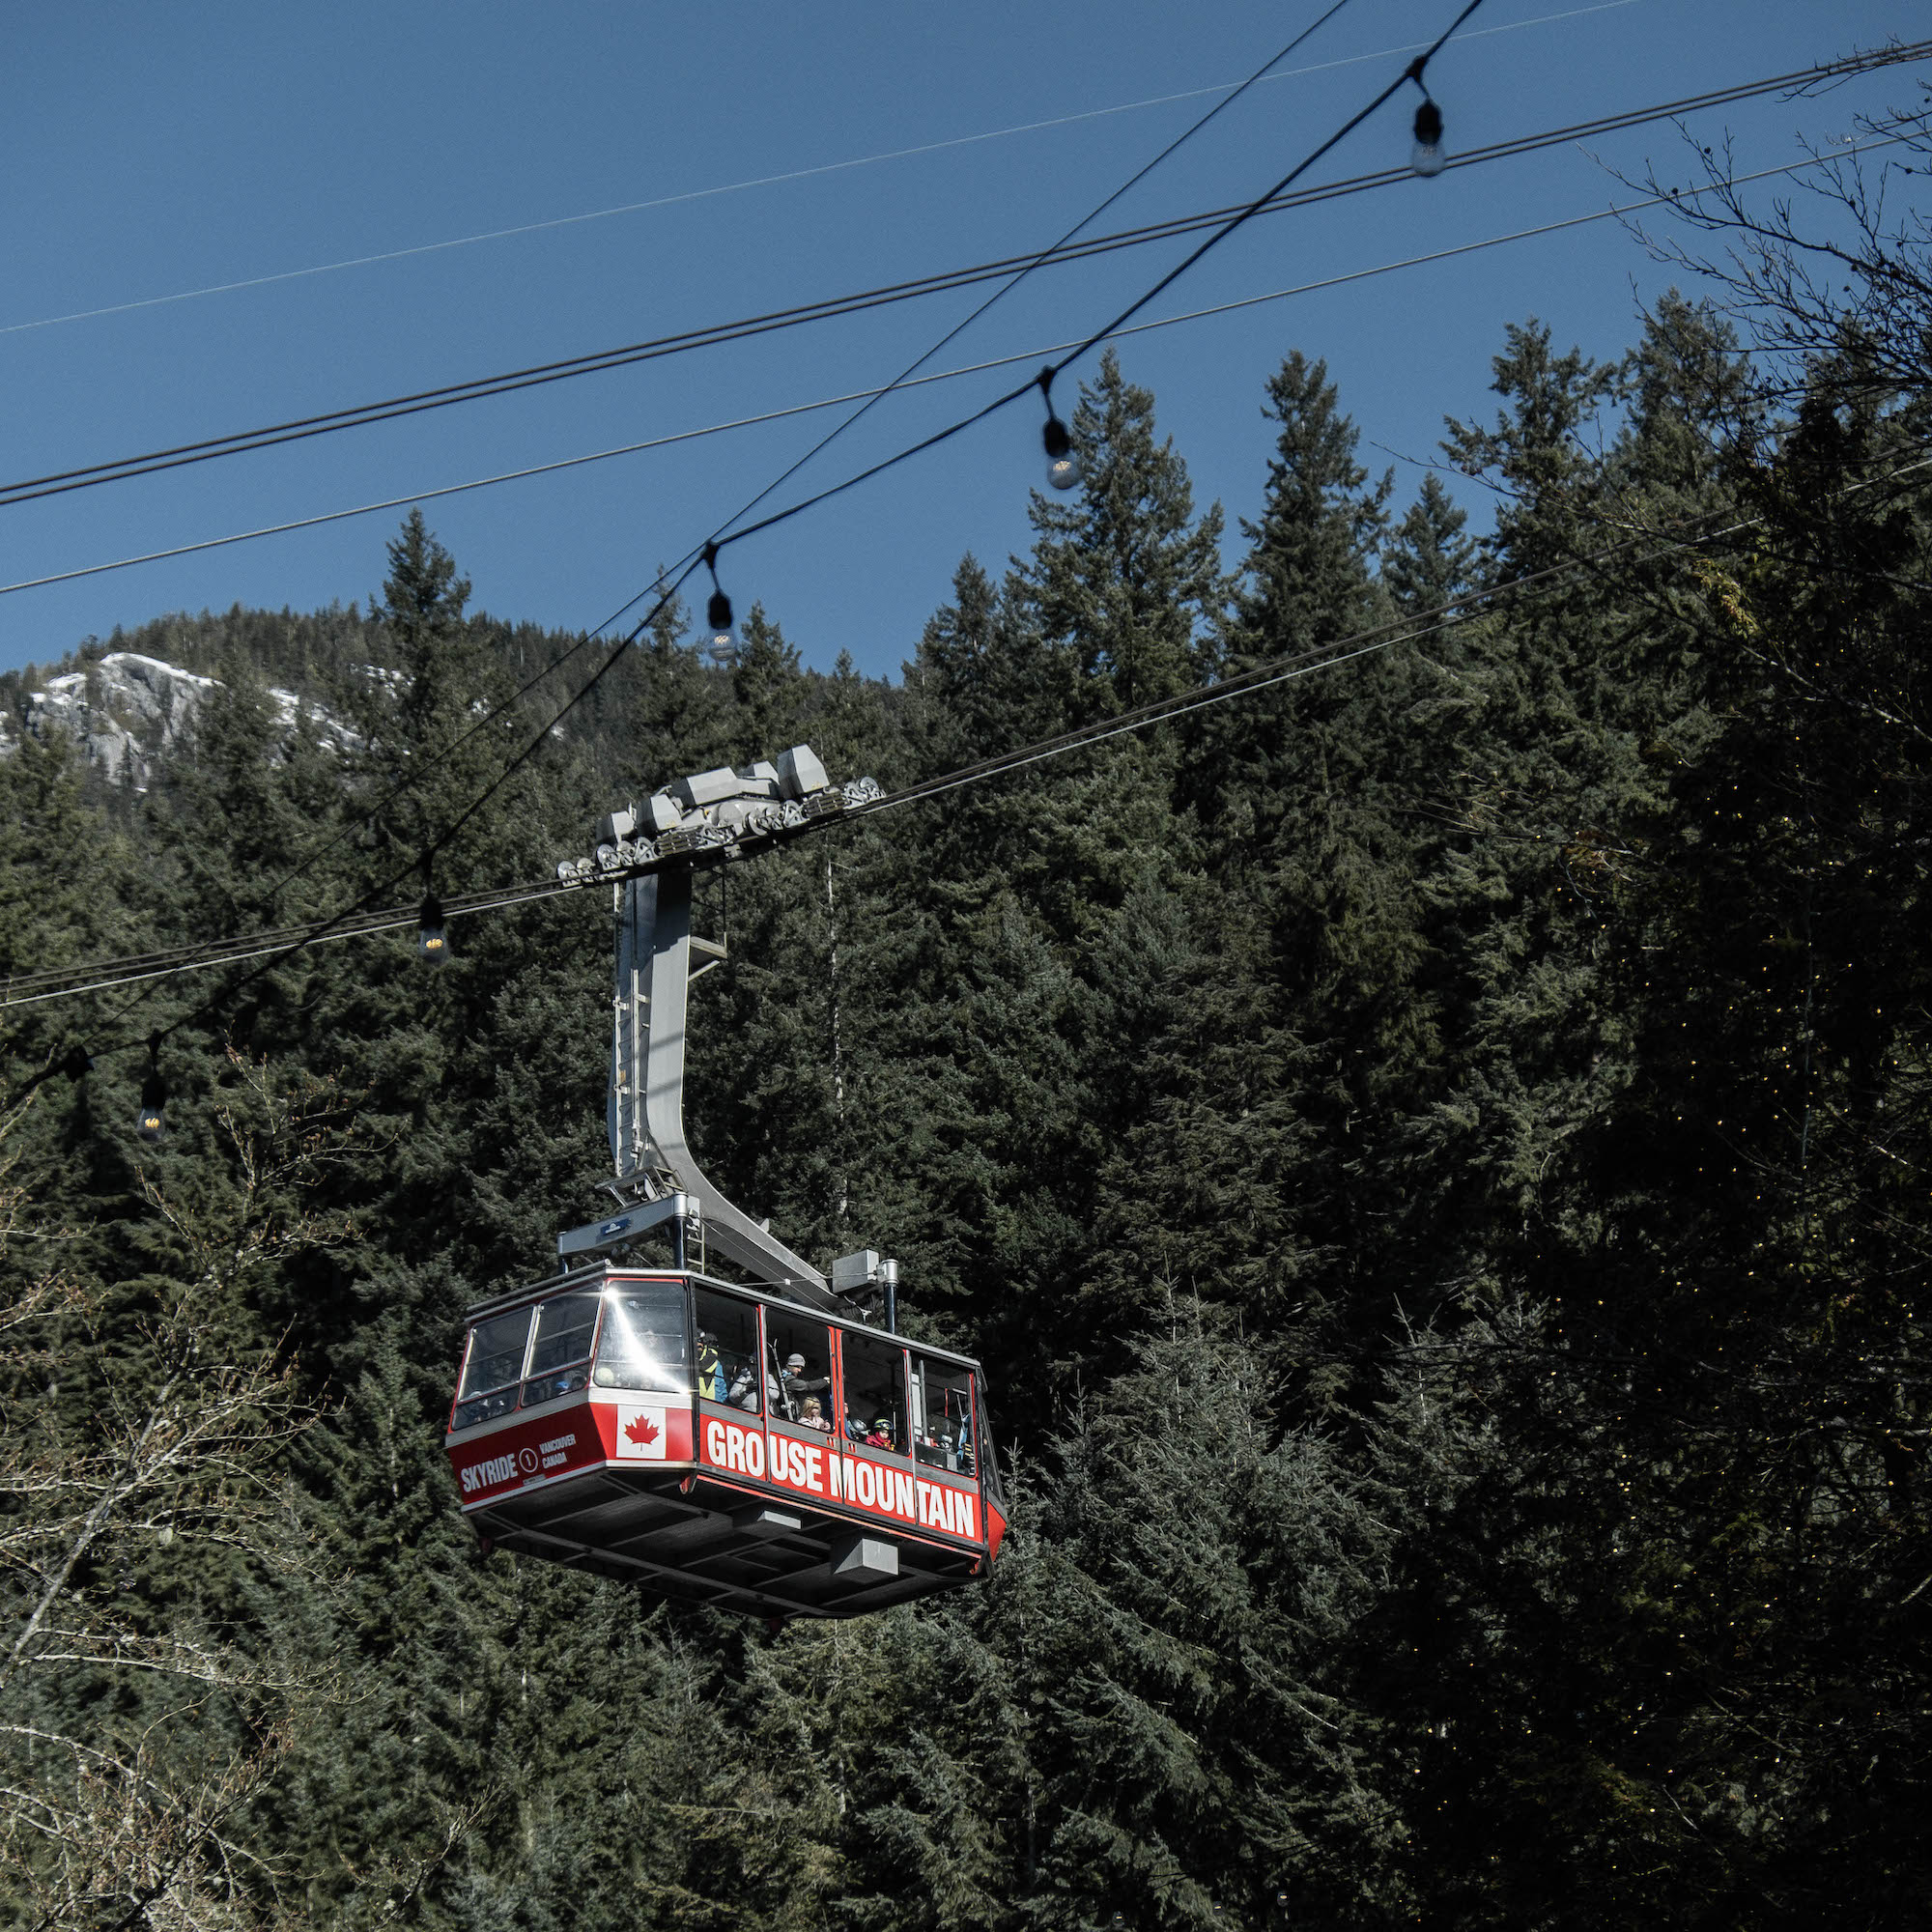 grouse moutain skyride